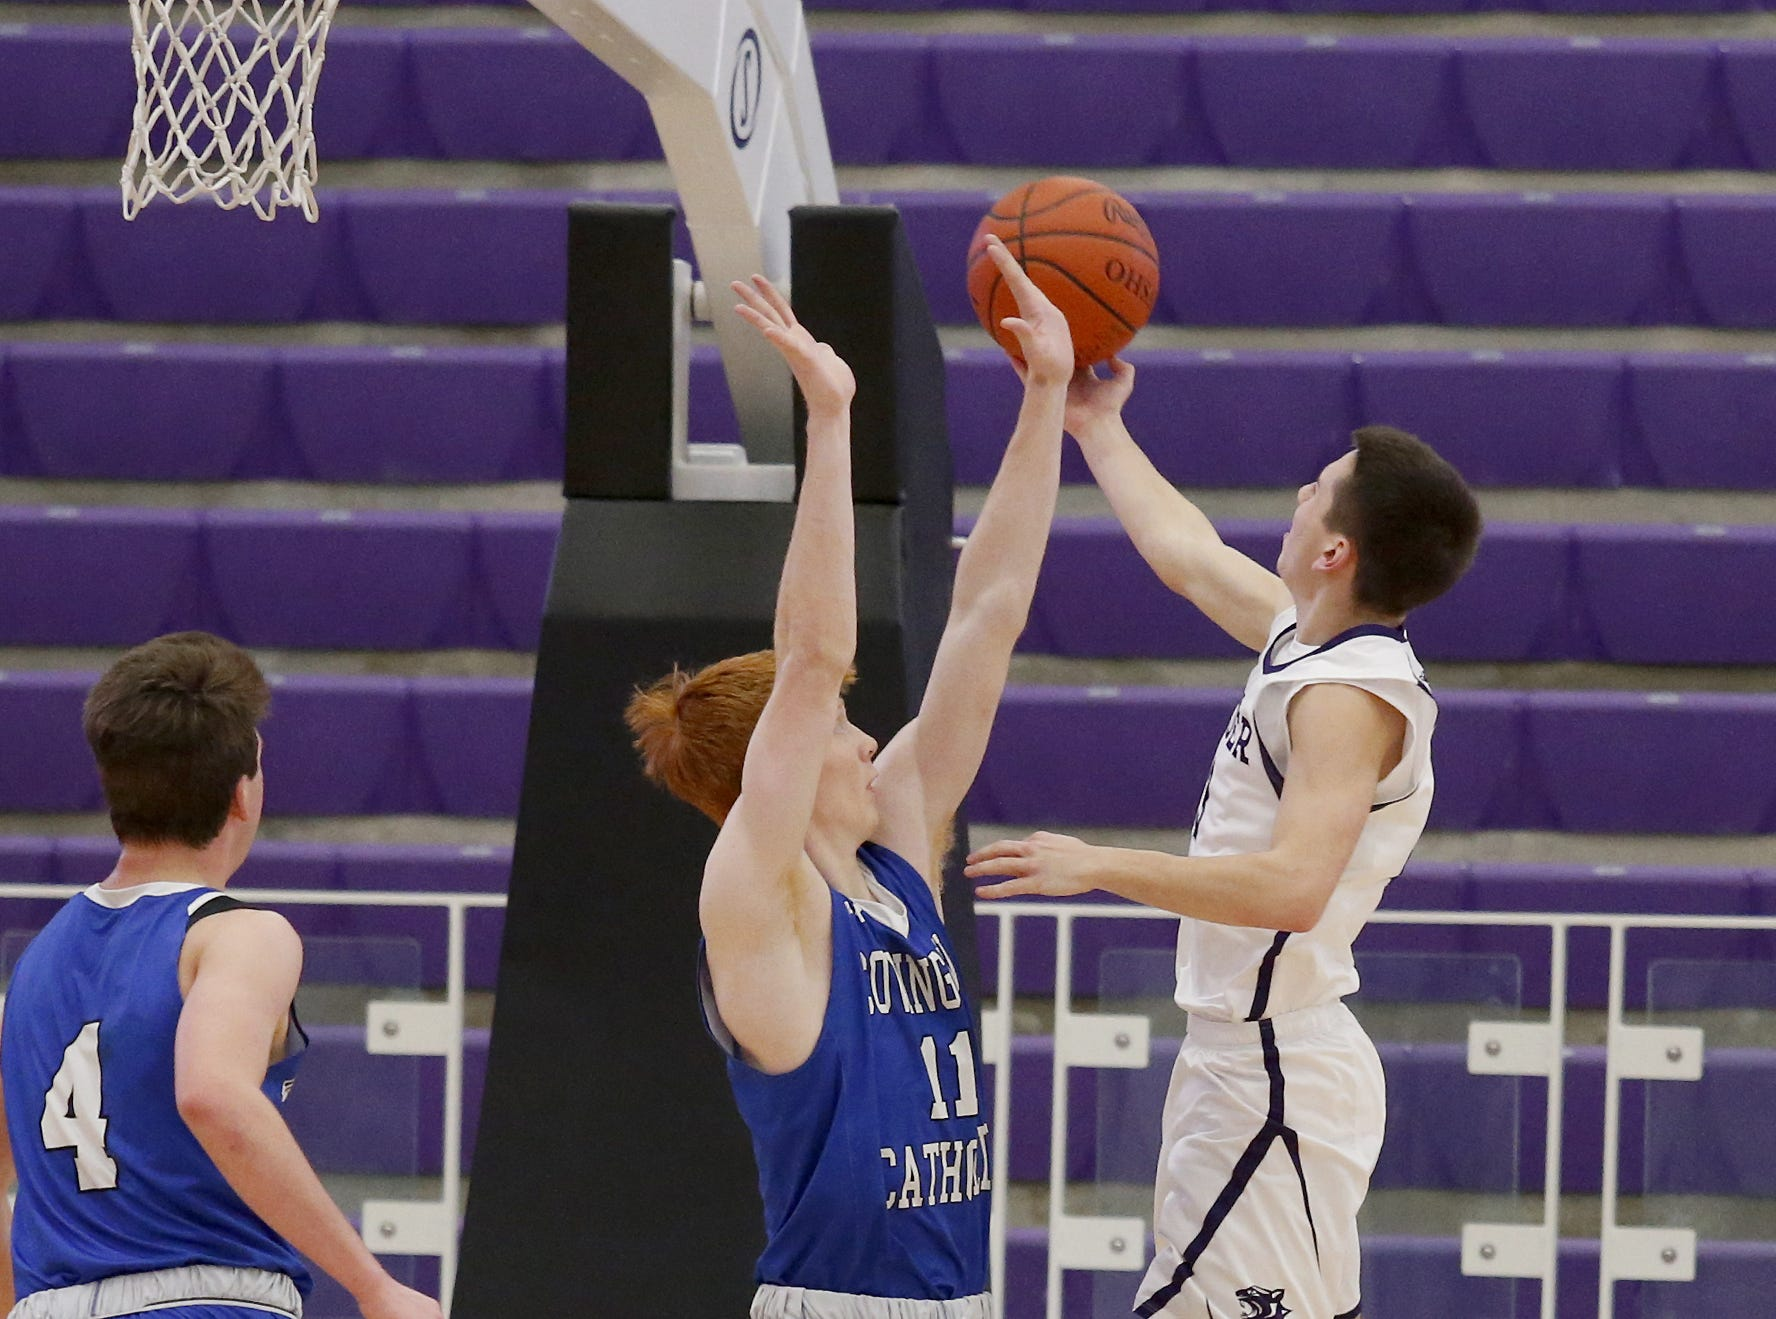 Elder guard Willard Cluxton puts in a basket against Covington Catholic center Tyler Fleek during the Midwest King Classic at Jerry Lucas Court in Wade E. Miller Arena in Middletown Saturday, Jan. 19, 2019.